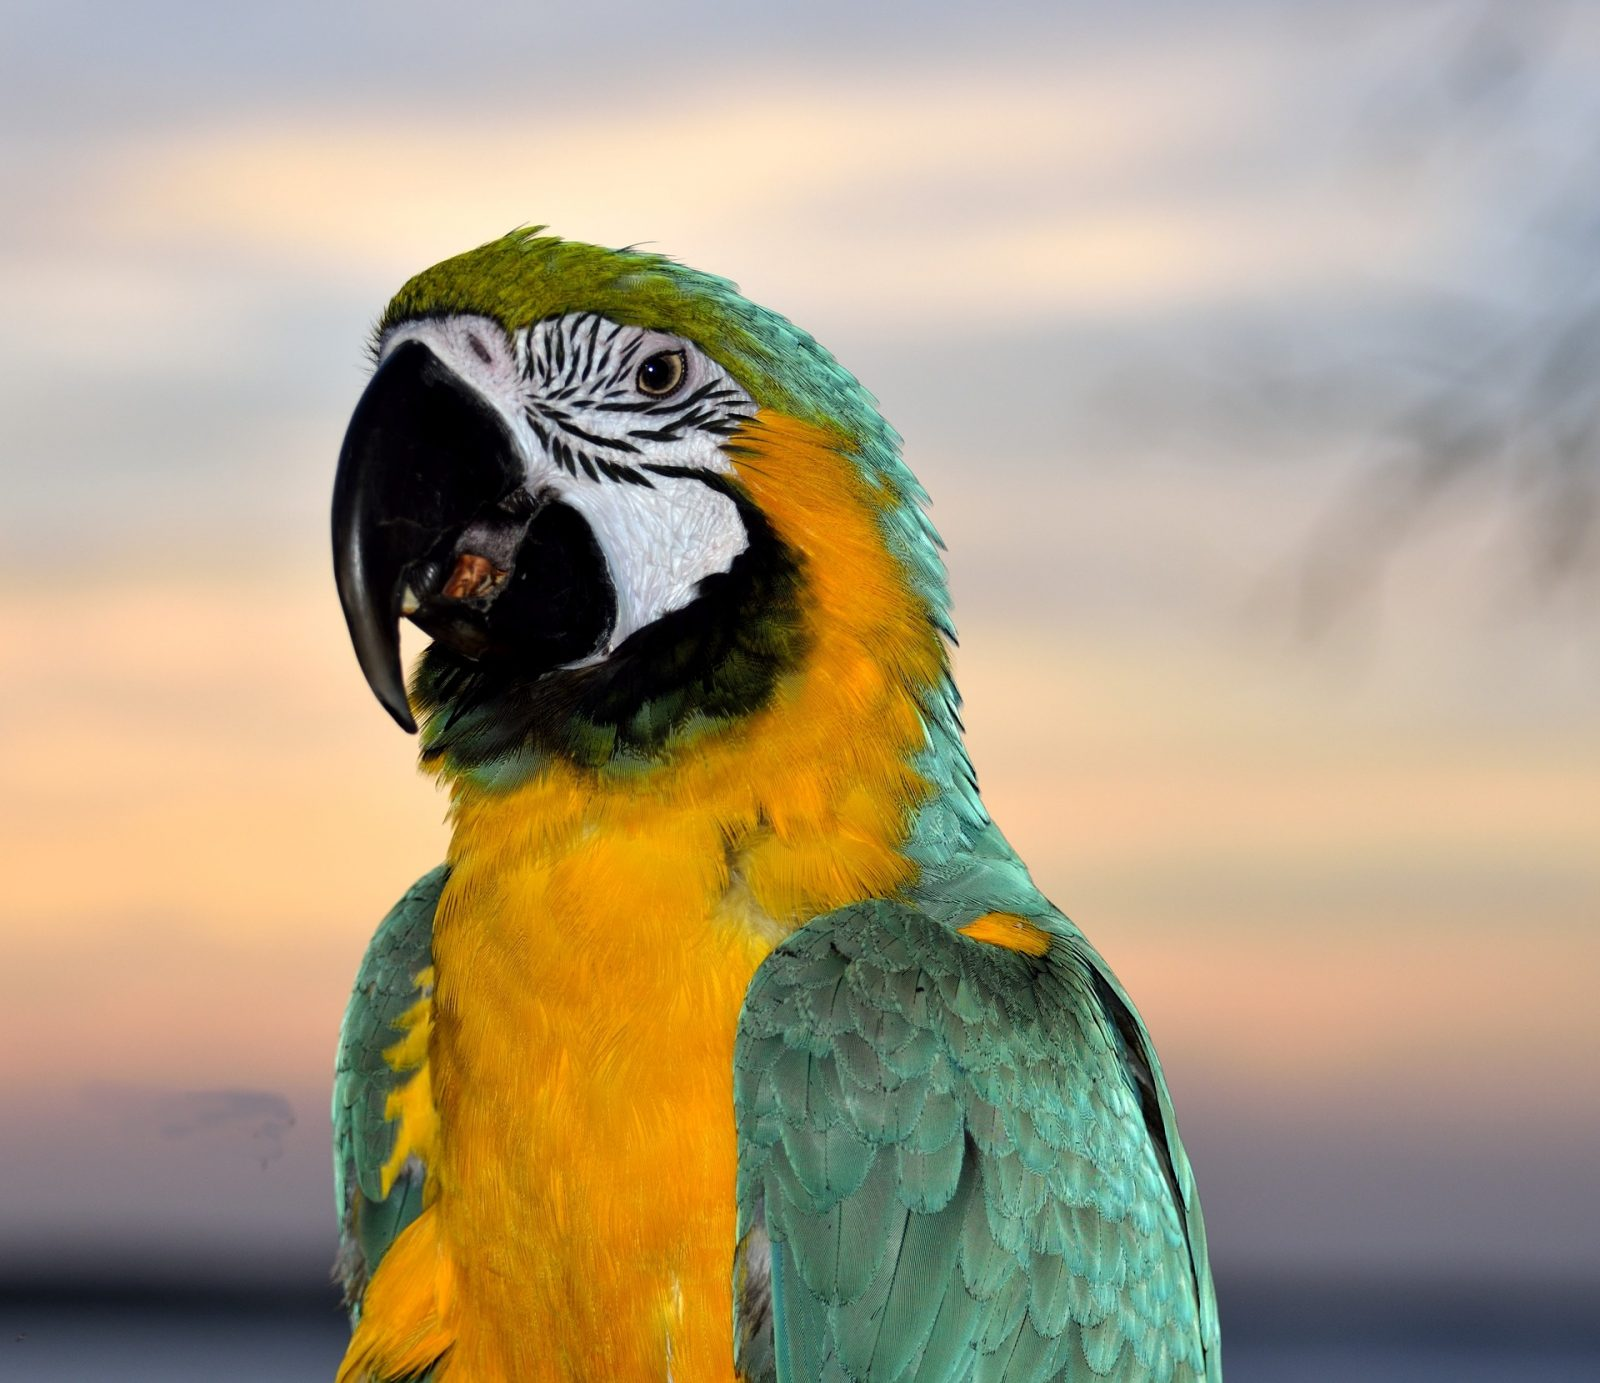 Are Parrots Cold Or Warm Blooded